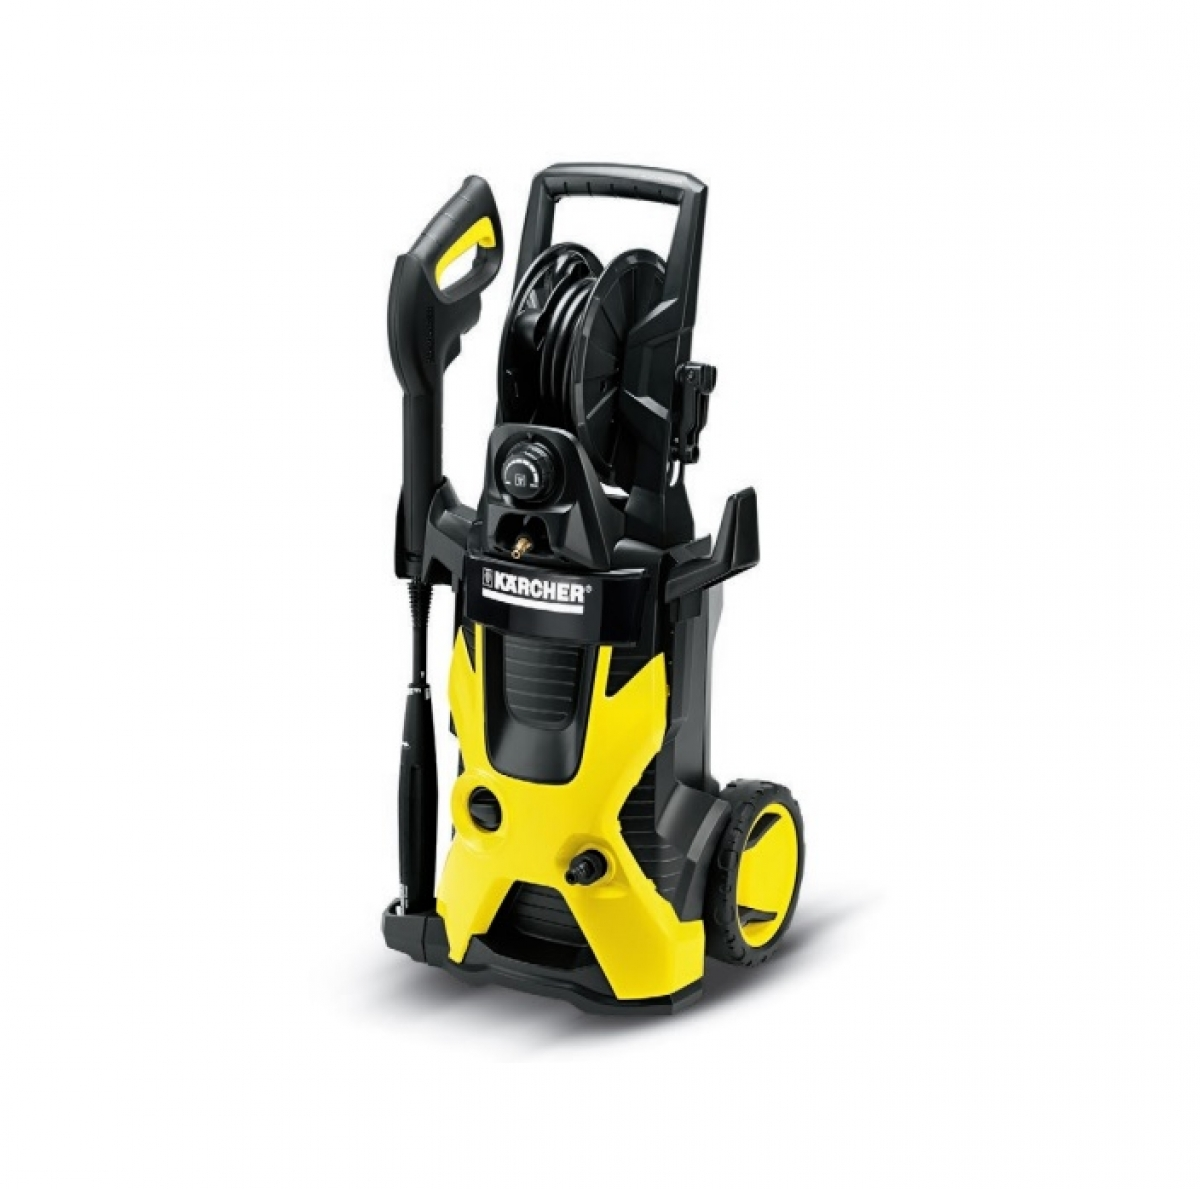 karcher k5 premium induction high pressure washer my. Black Bedroom Furniture Sets. Home Design Ideas